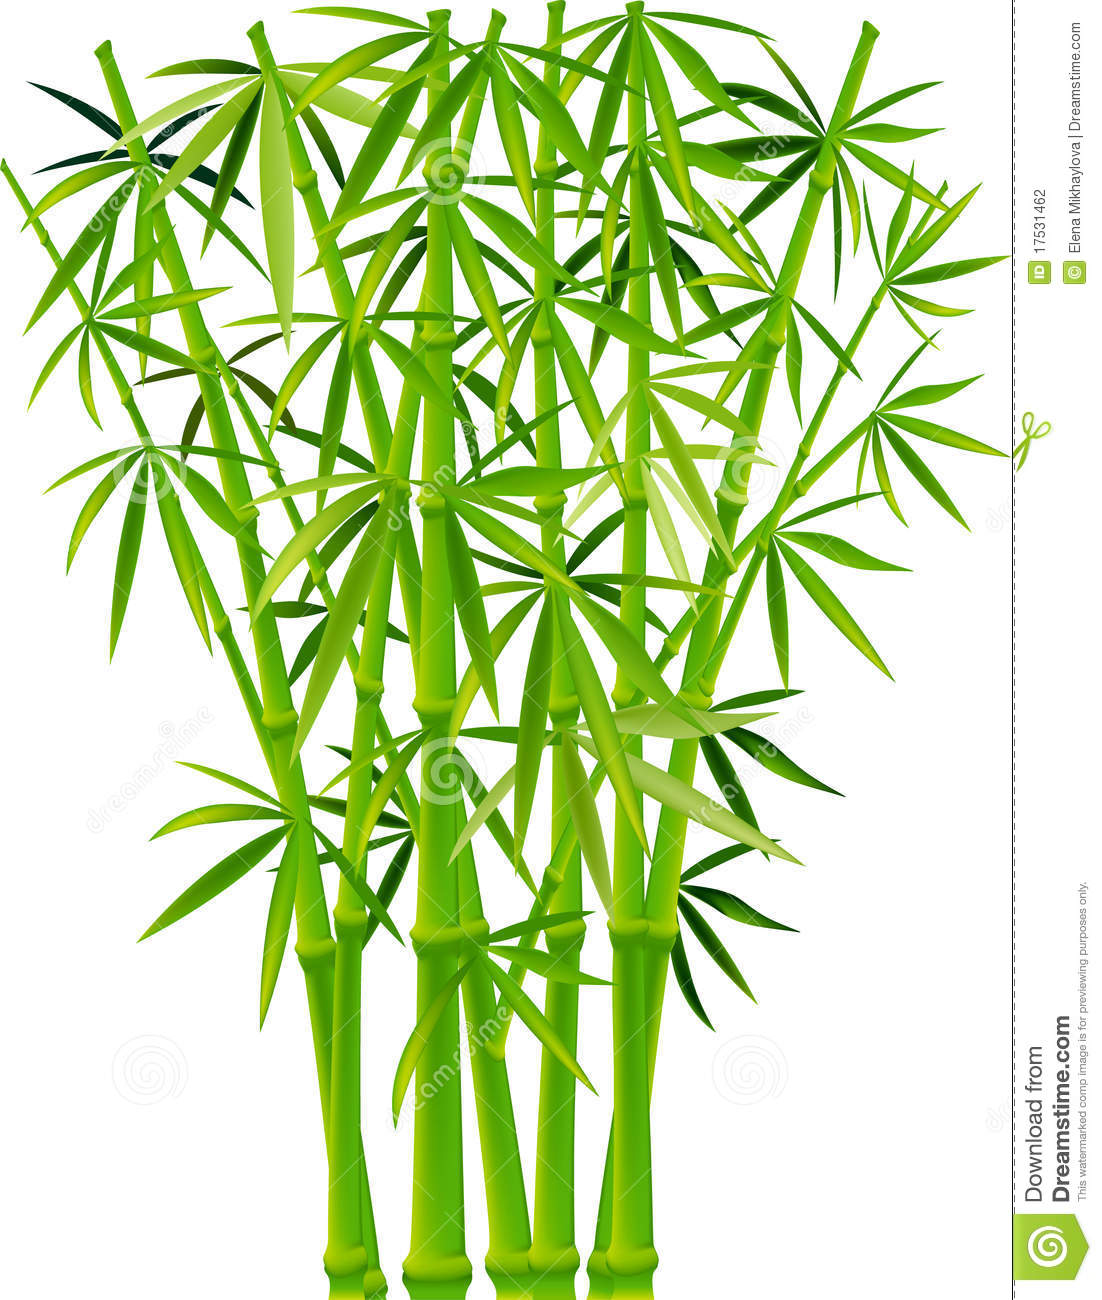 Bamboo Stock Photography Image 17531462